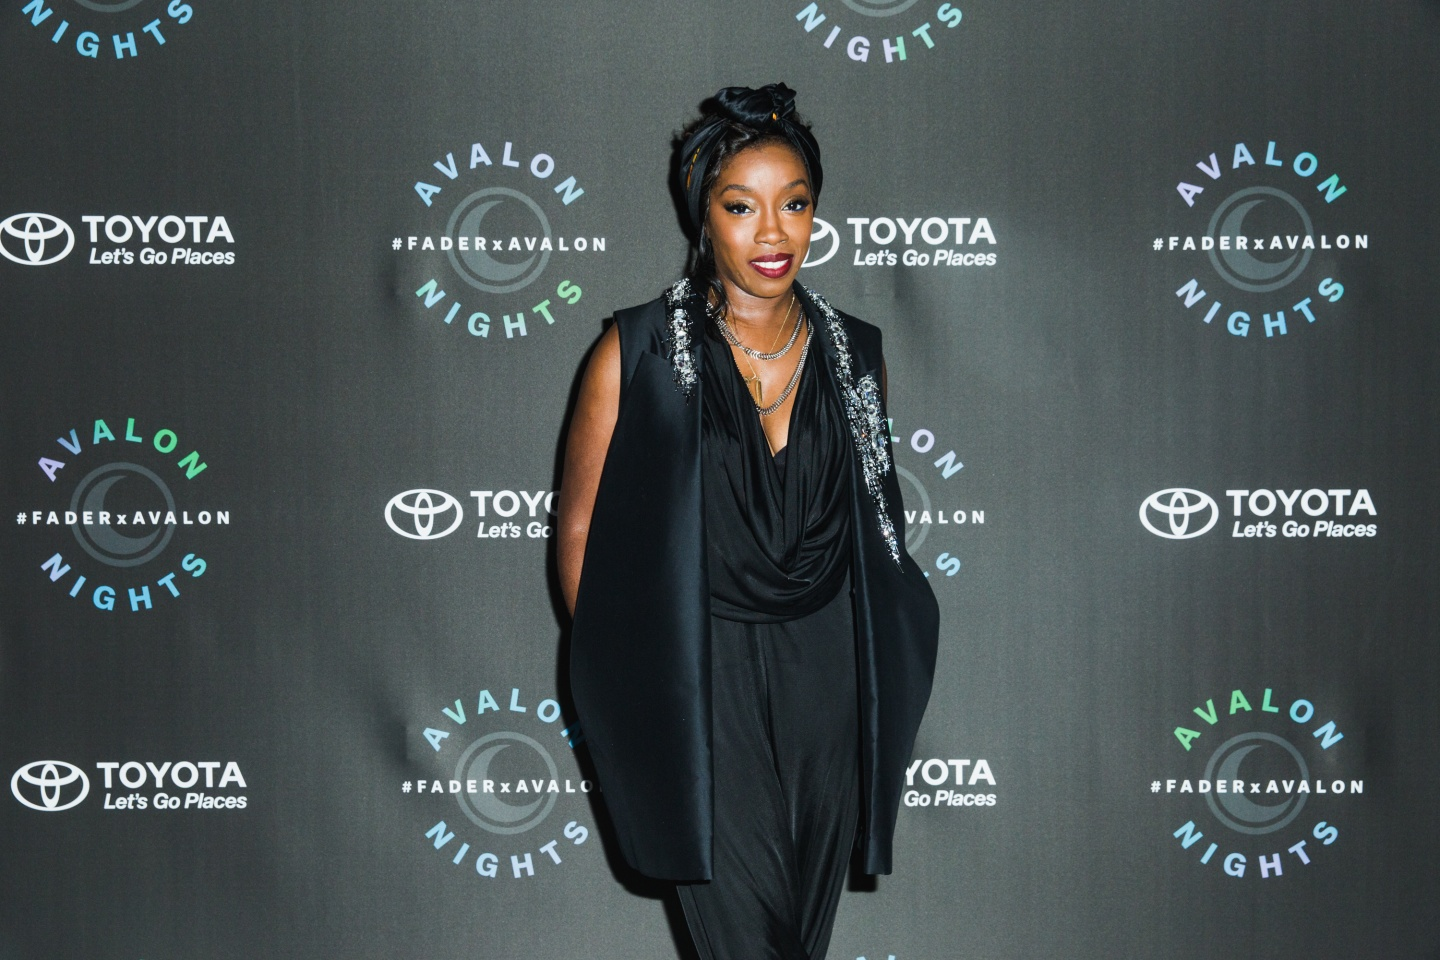 Estelle Rocked Night Two Of FADER x Toyota Avalon Nights